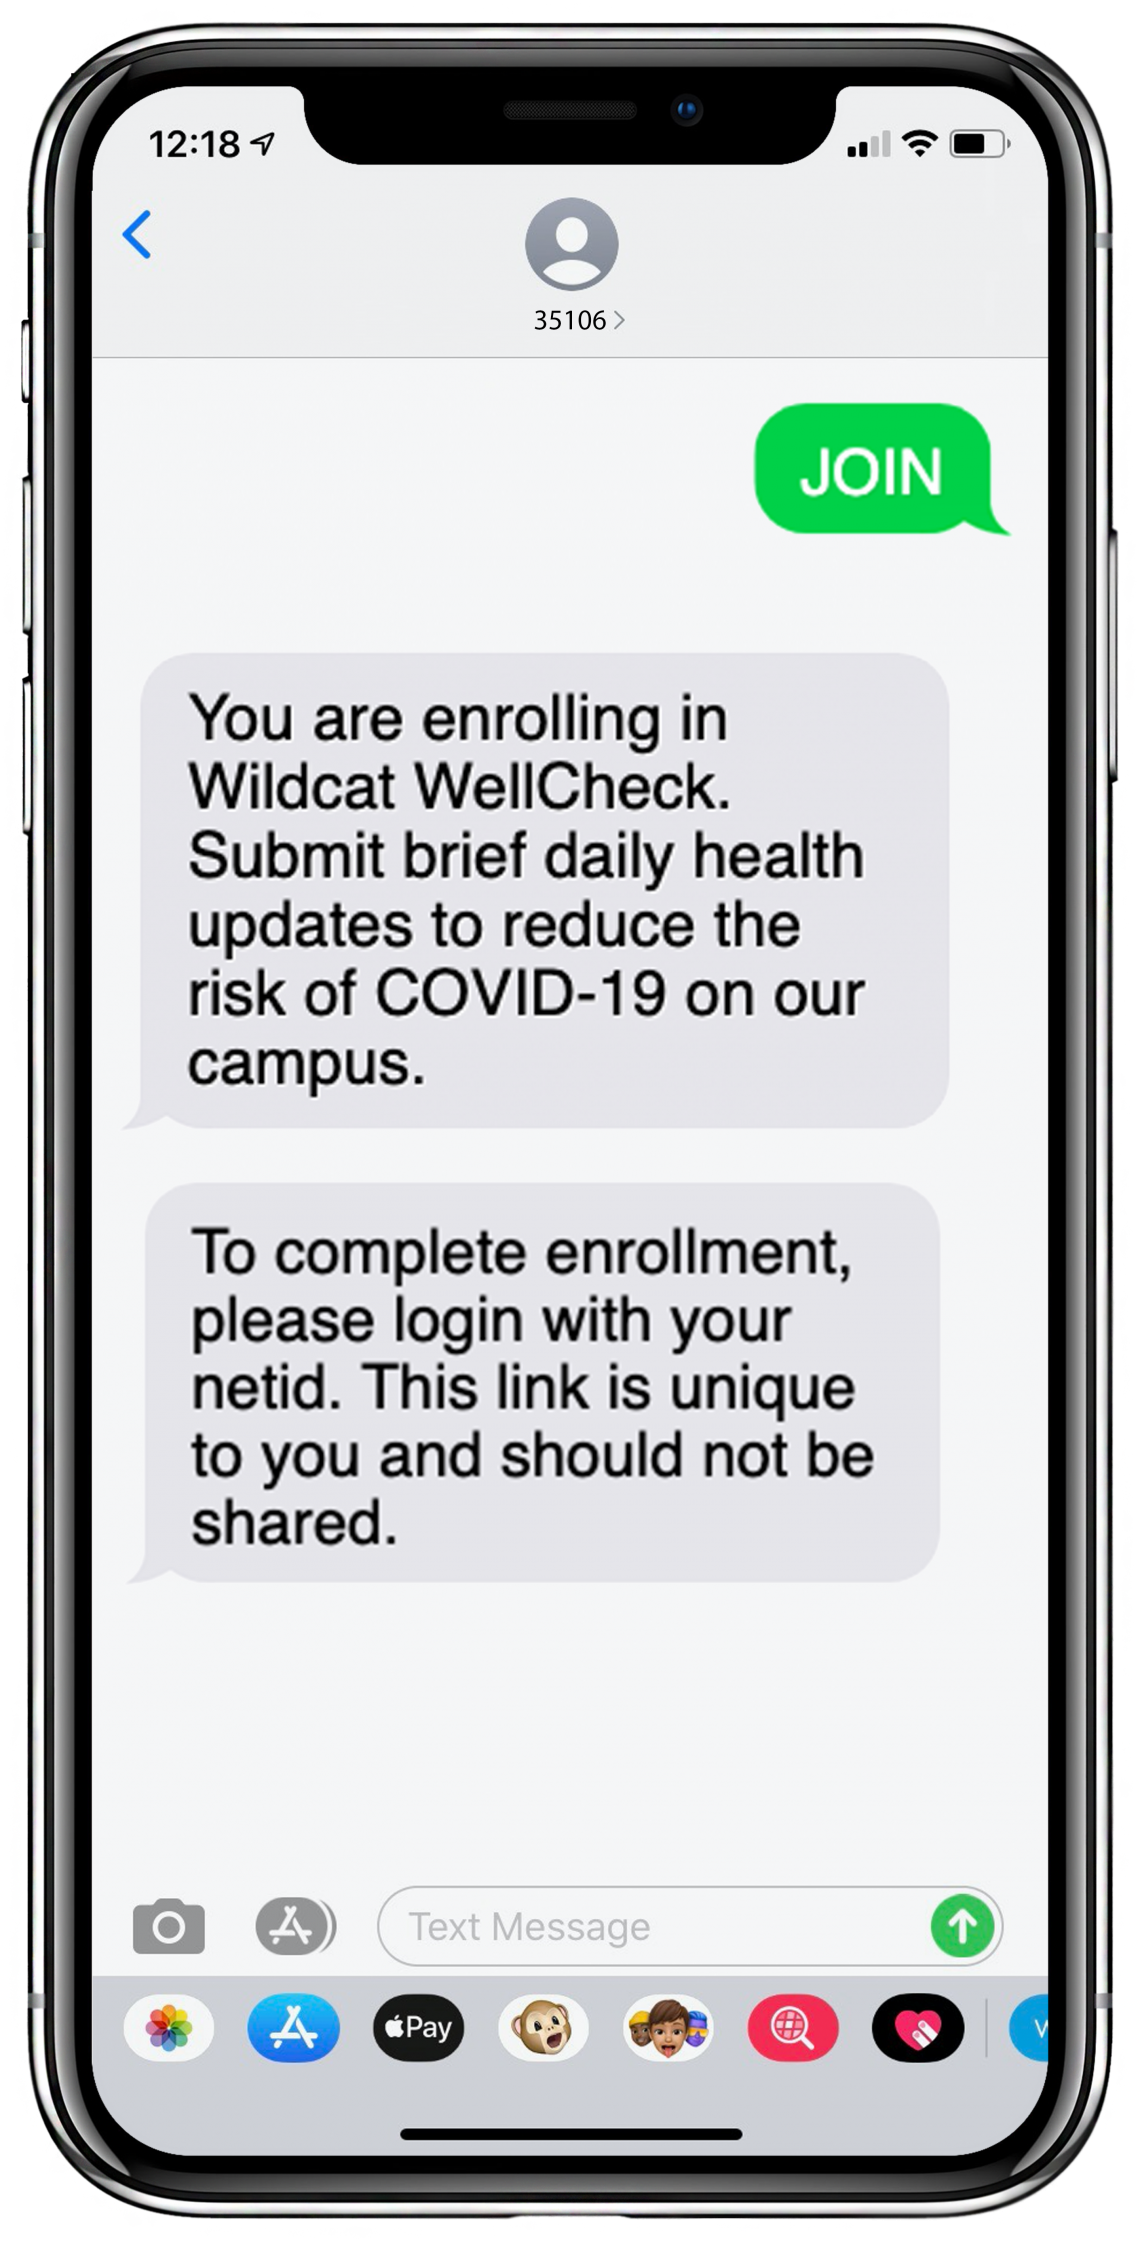 Received text 1: You are enrolling in Wildcat WellCheck. Submit brief daily health updates to assess the risk of COVID-19 on campus. Receive timely alerts and tips. Received text 2: To complete enrollment, please login with your netid. This link is unique